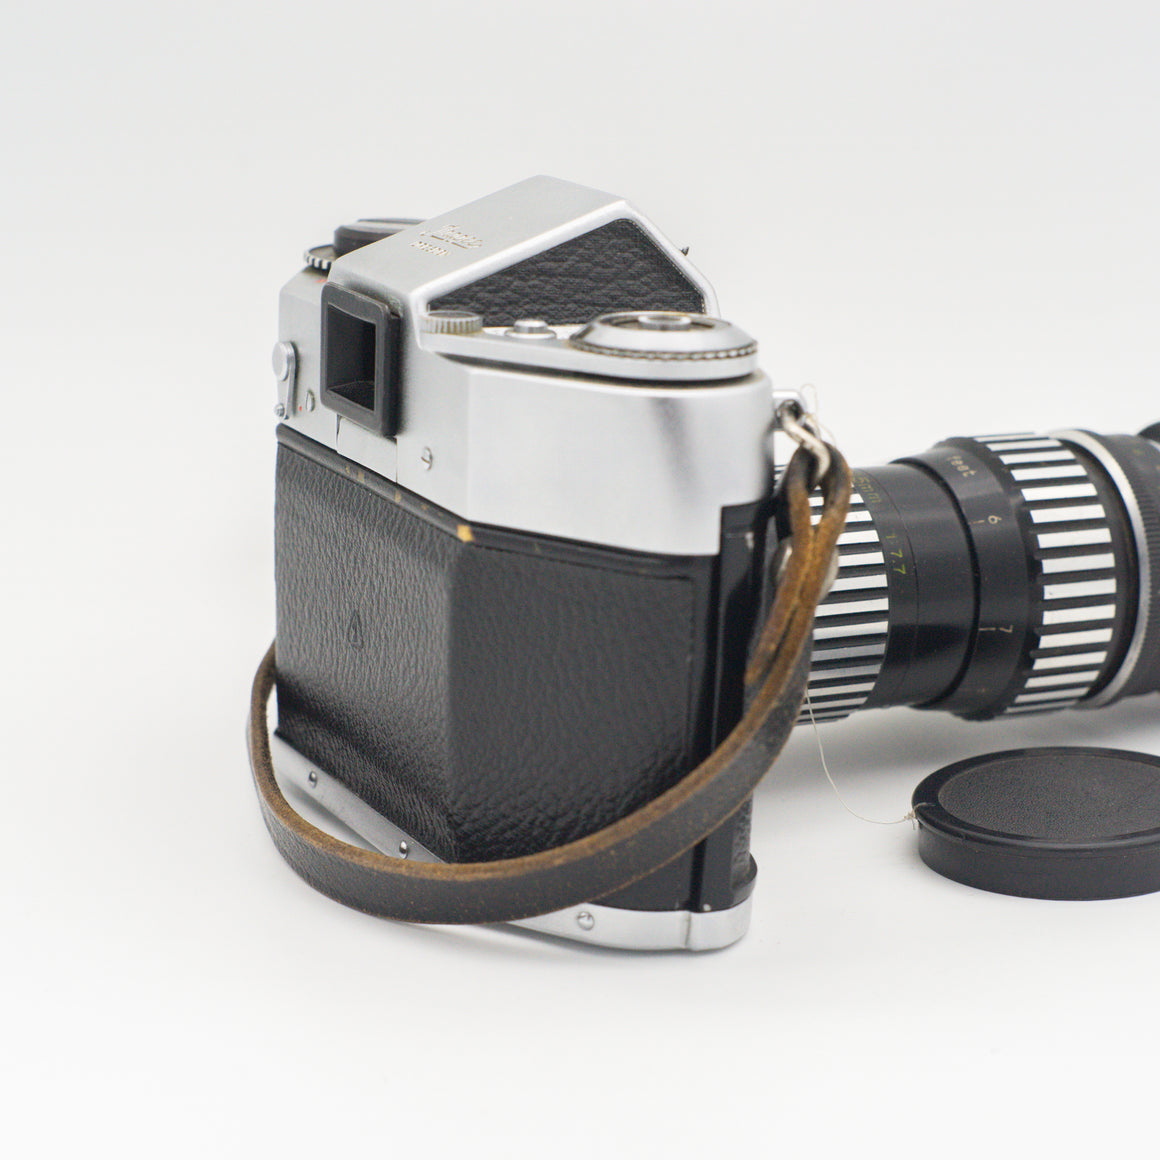 Exakta EXA500 35mm SLR Camera with a long lens